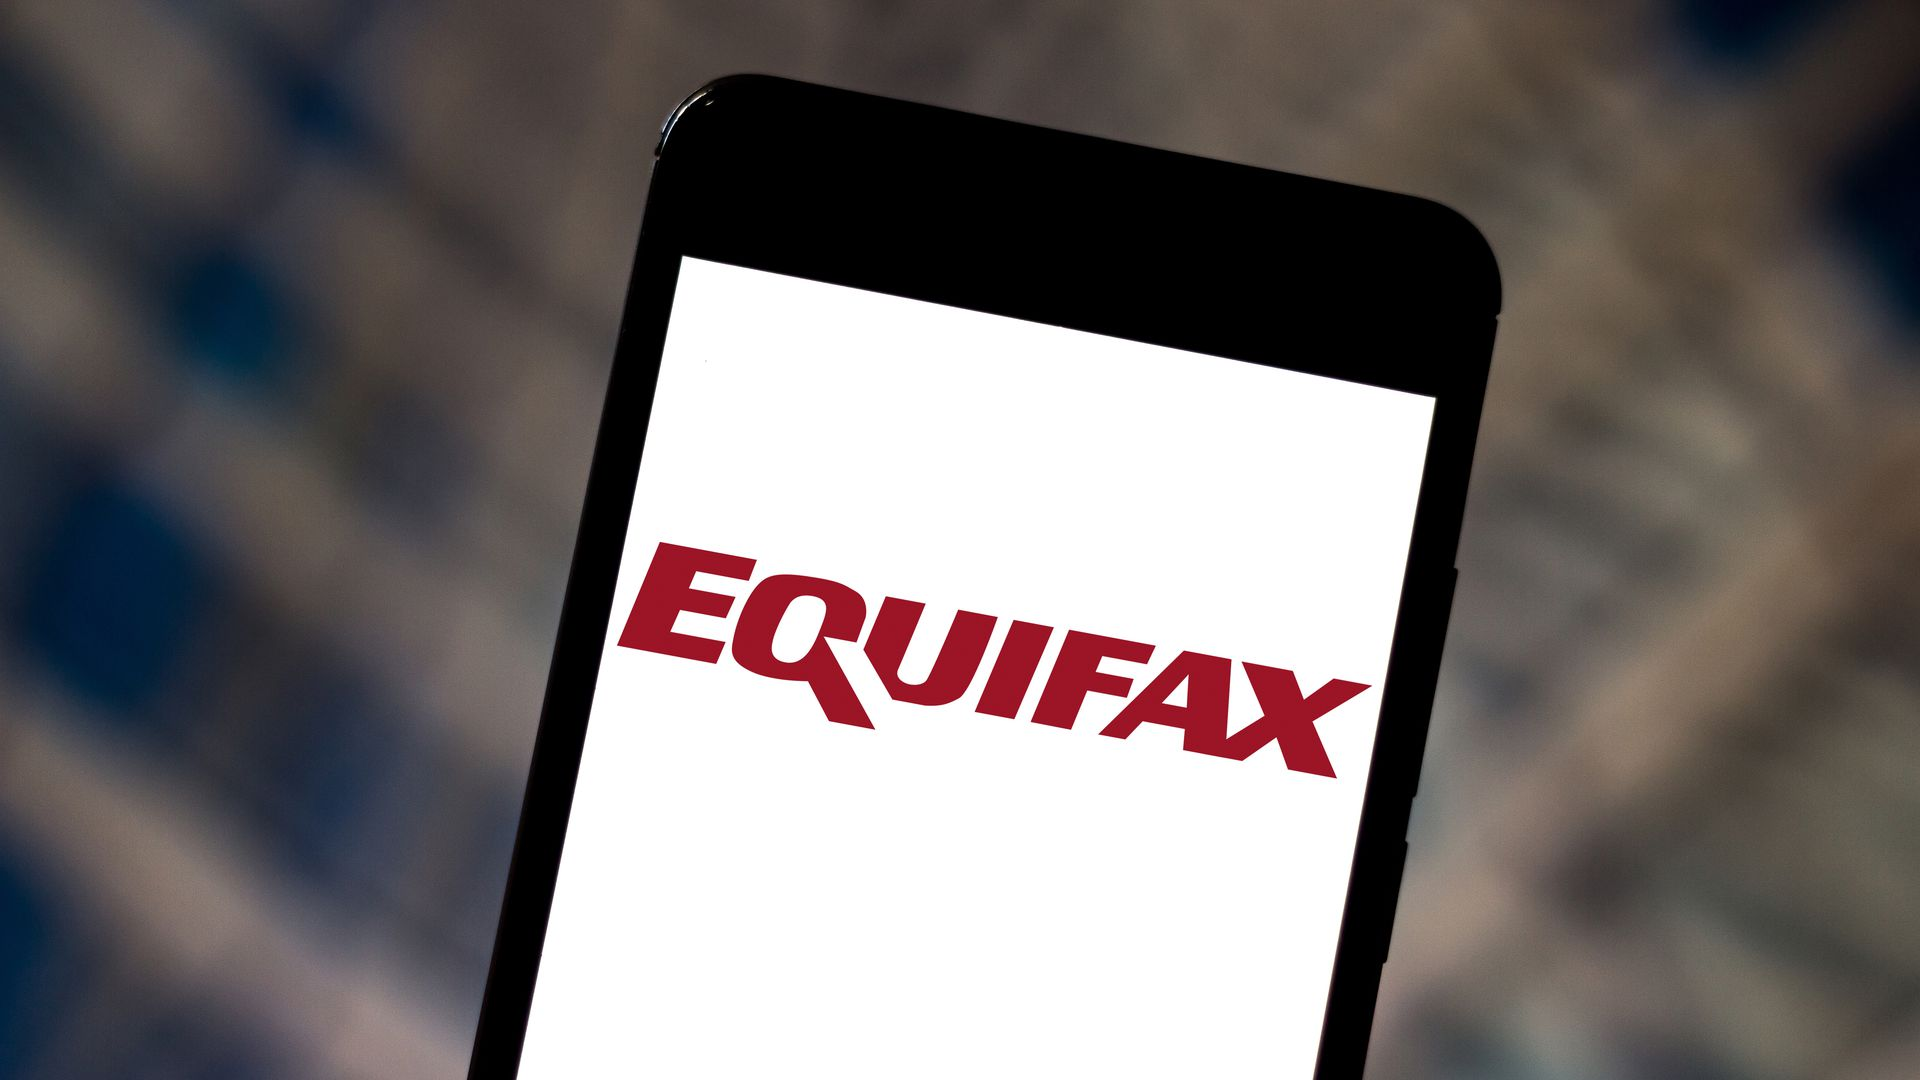 Report: Equifax expected to reach $650M settlement over data breach